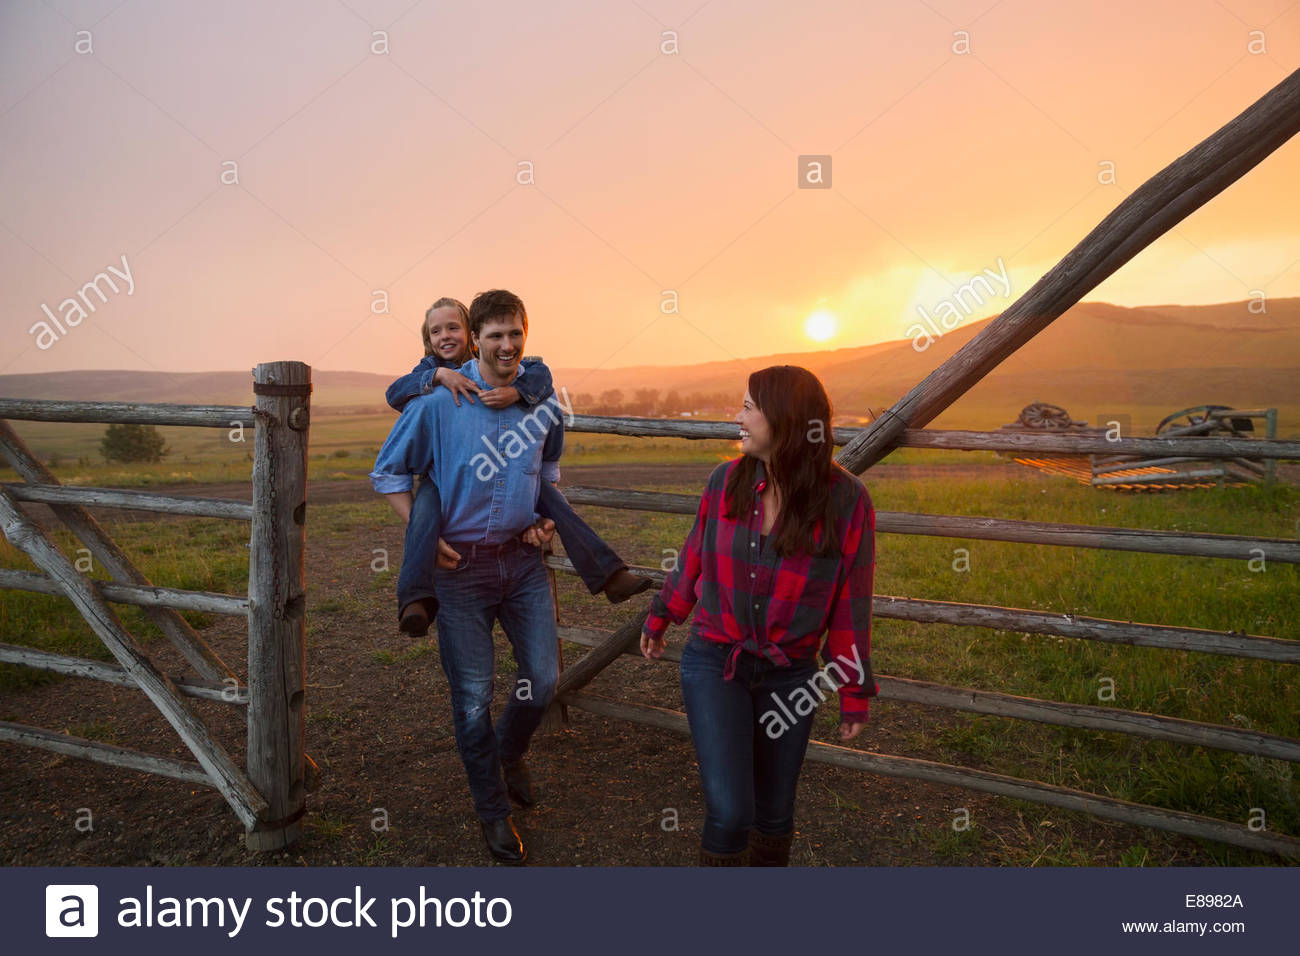 Family walking through pasture gate at sunset - Stock Image